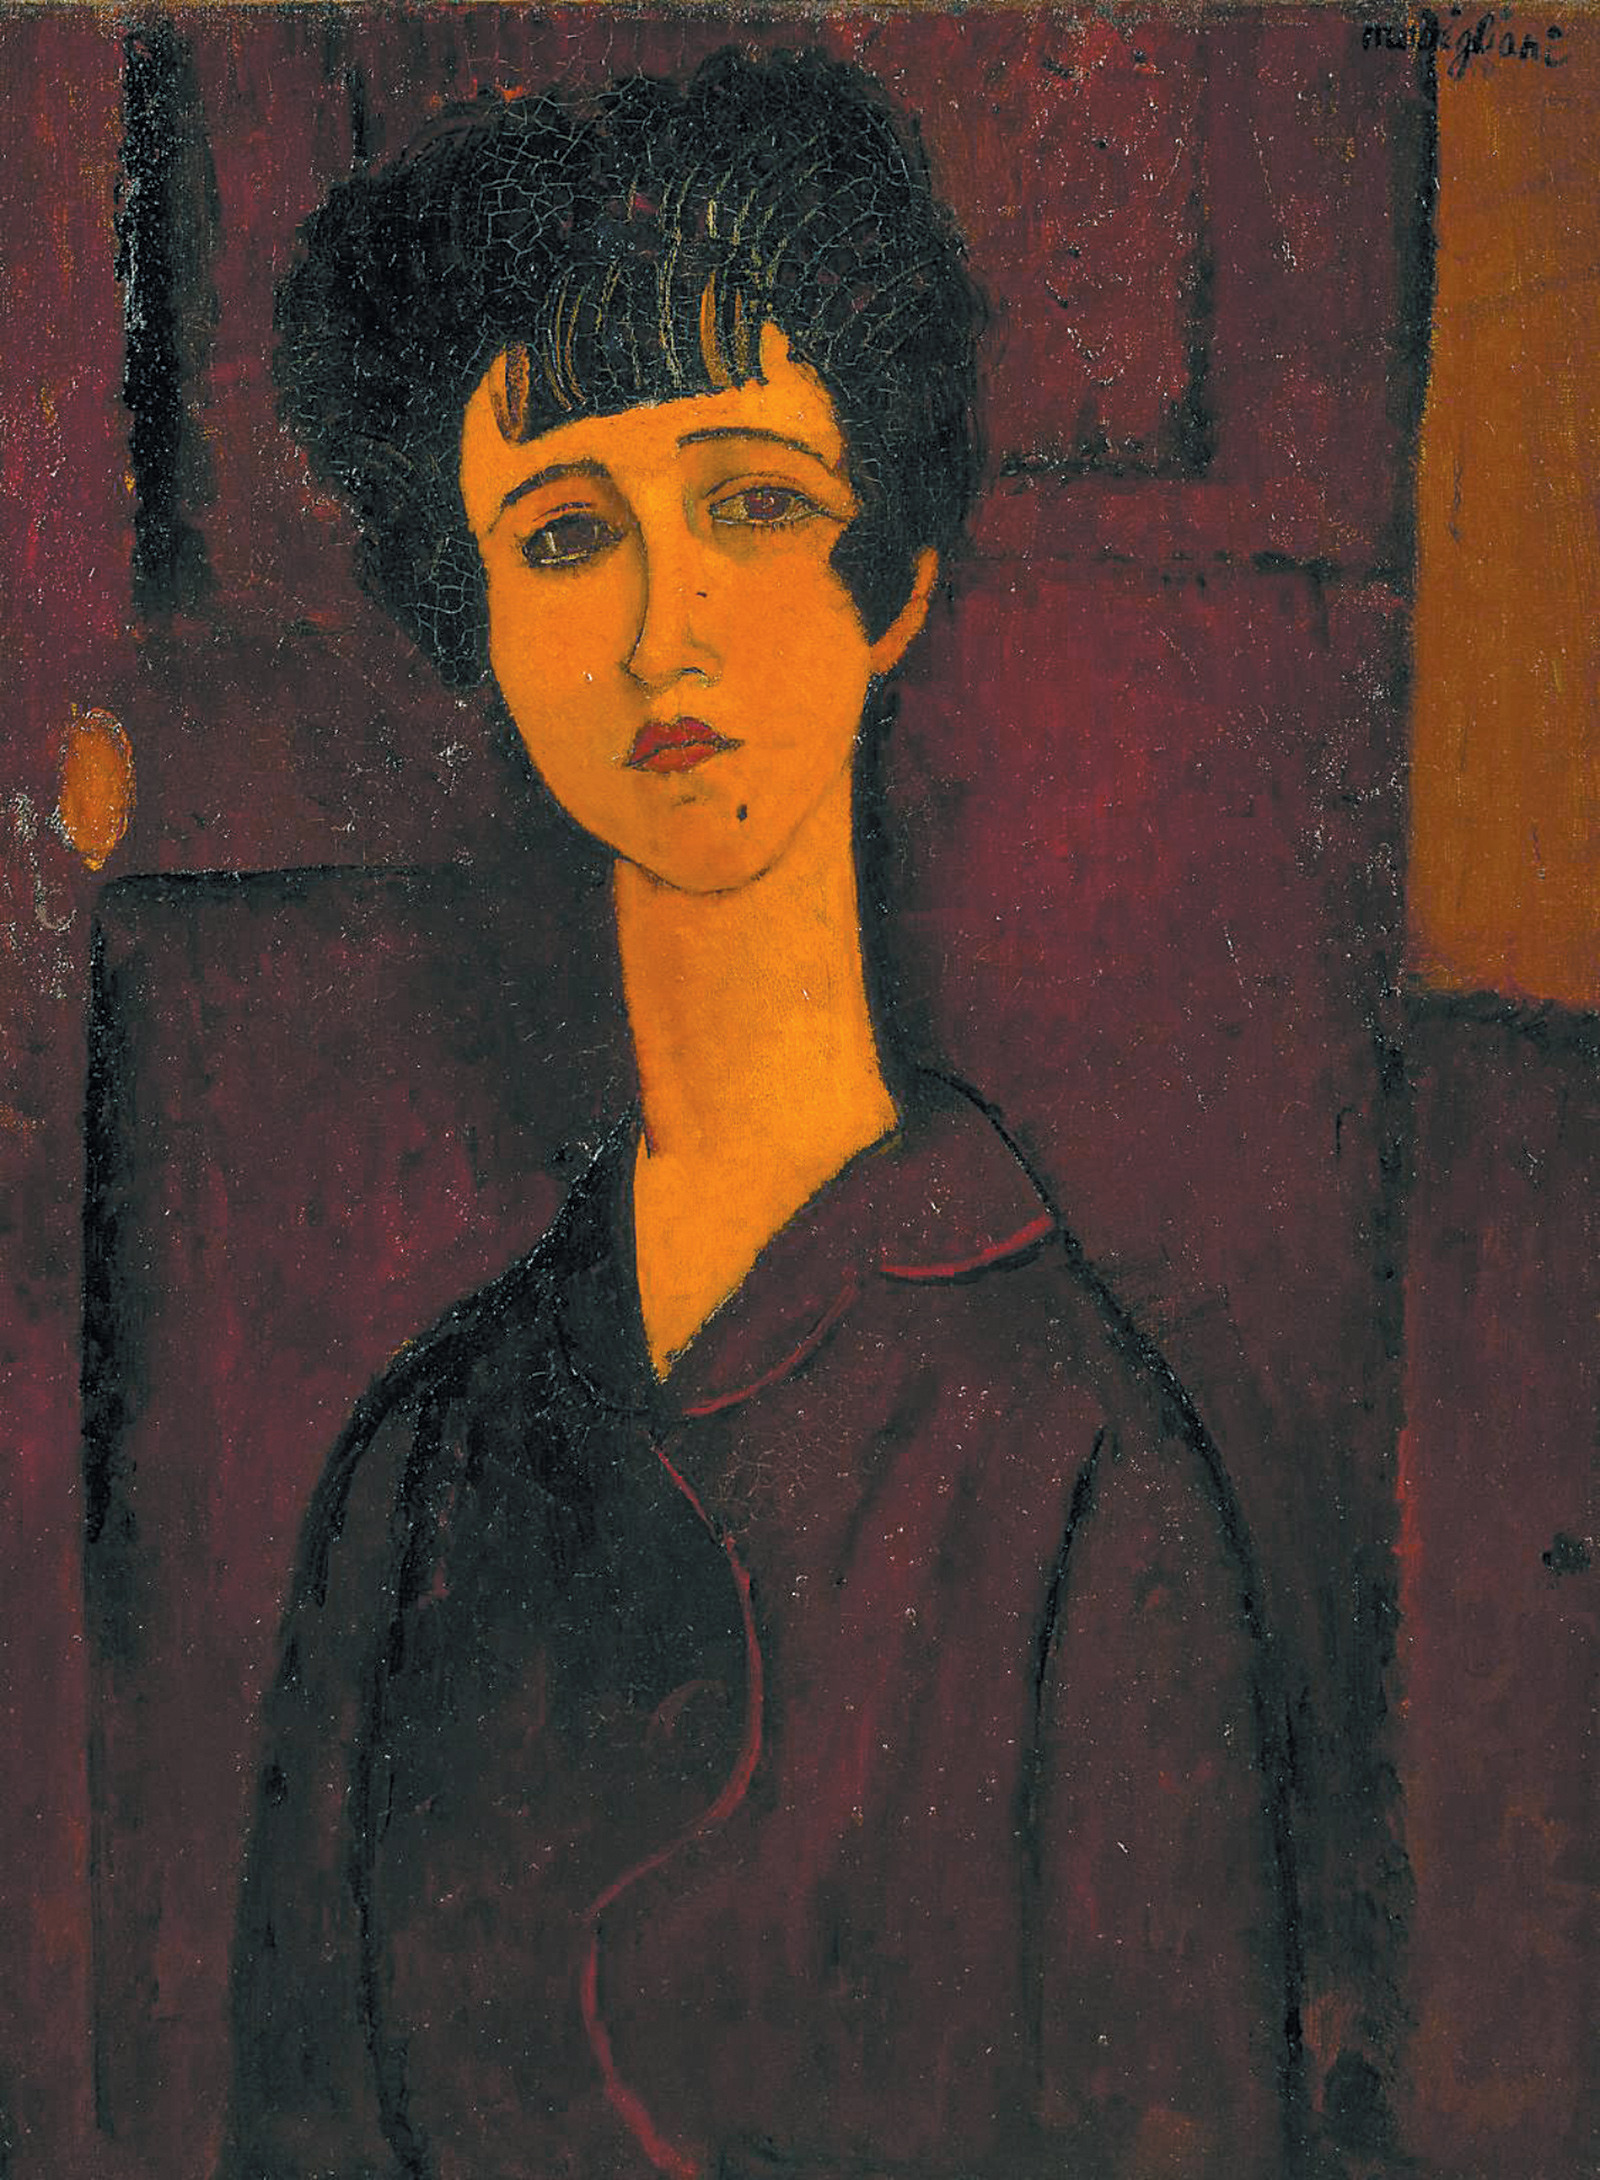 'Portrait of a Girl'; painting by Amedeo Modigliani, circa 1917